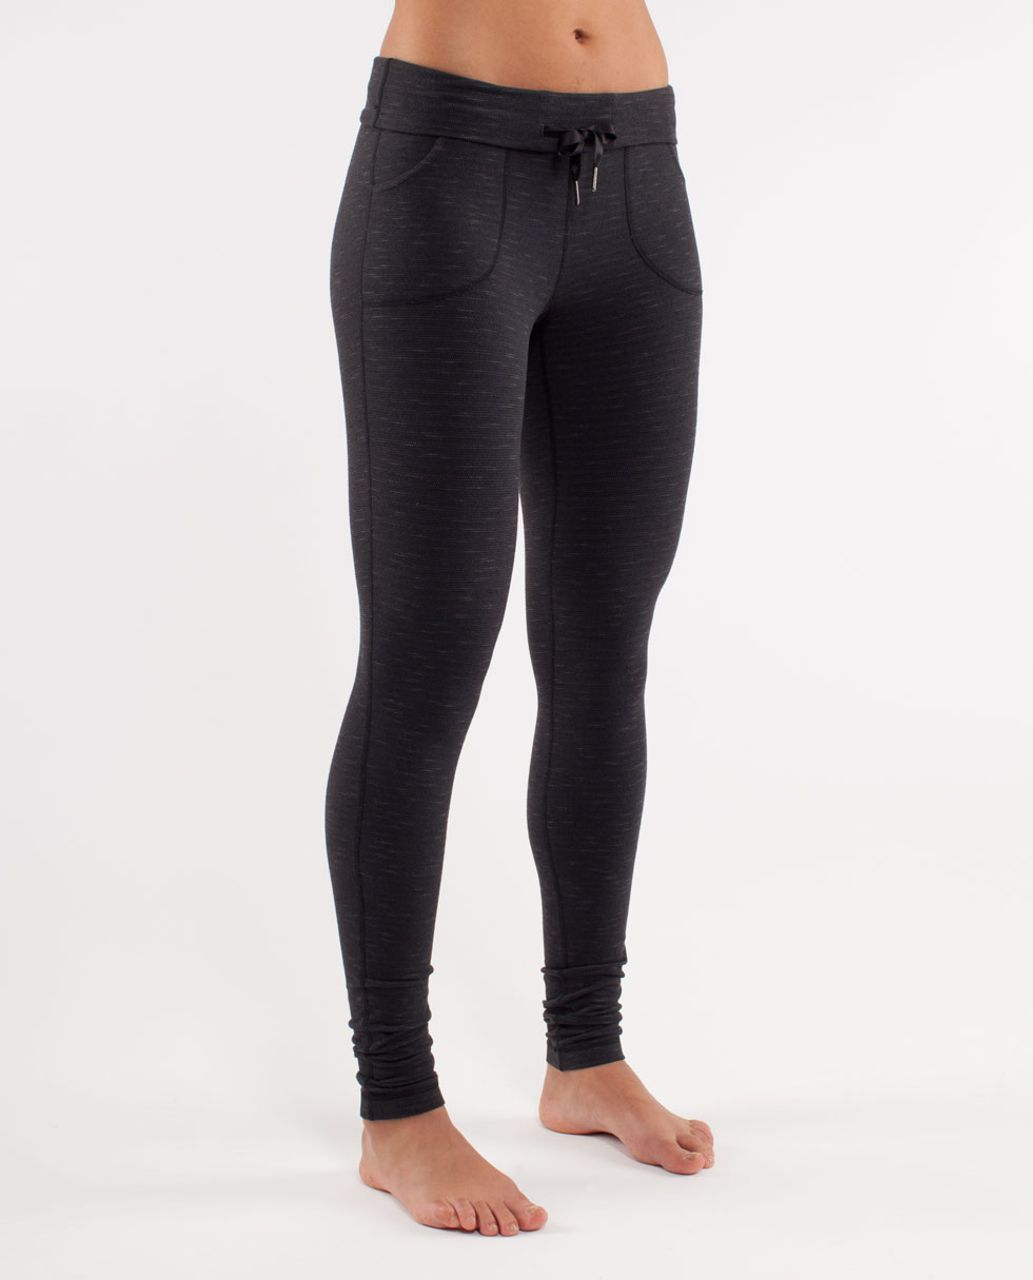 Lululemon Will Pant *Pique - Black Pique